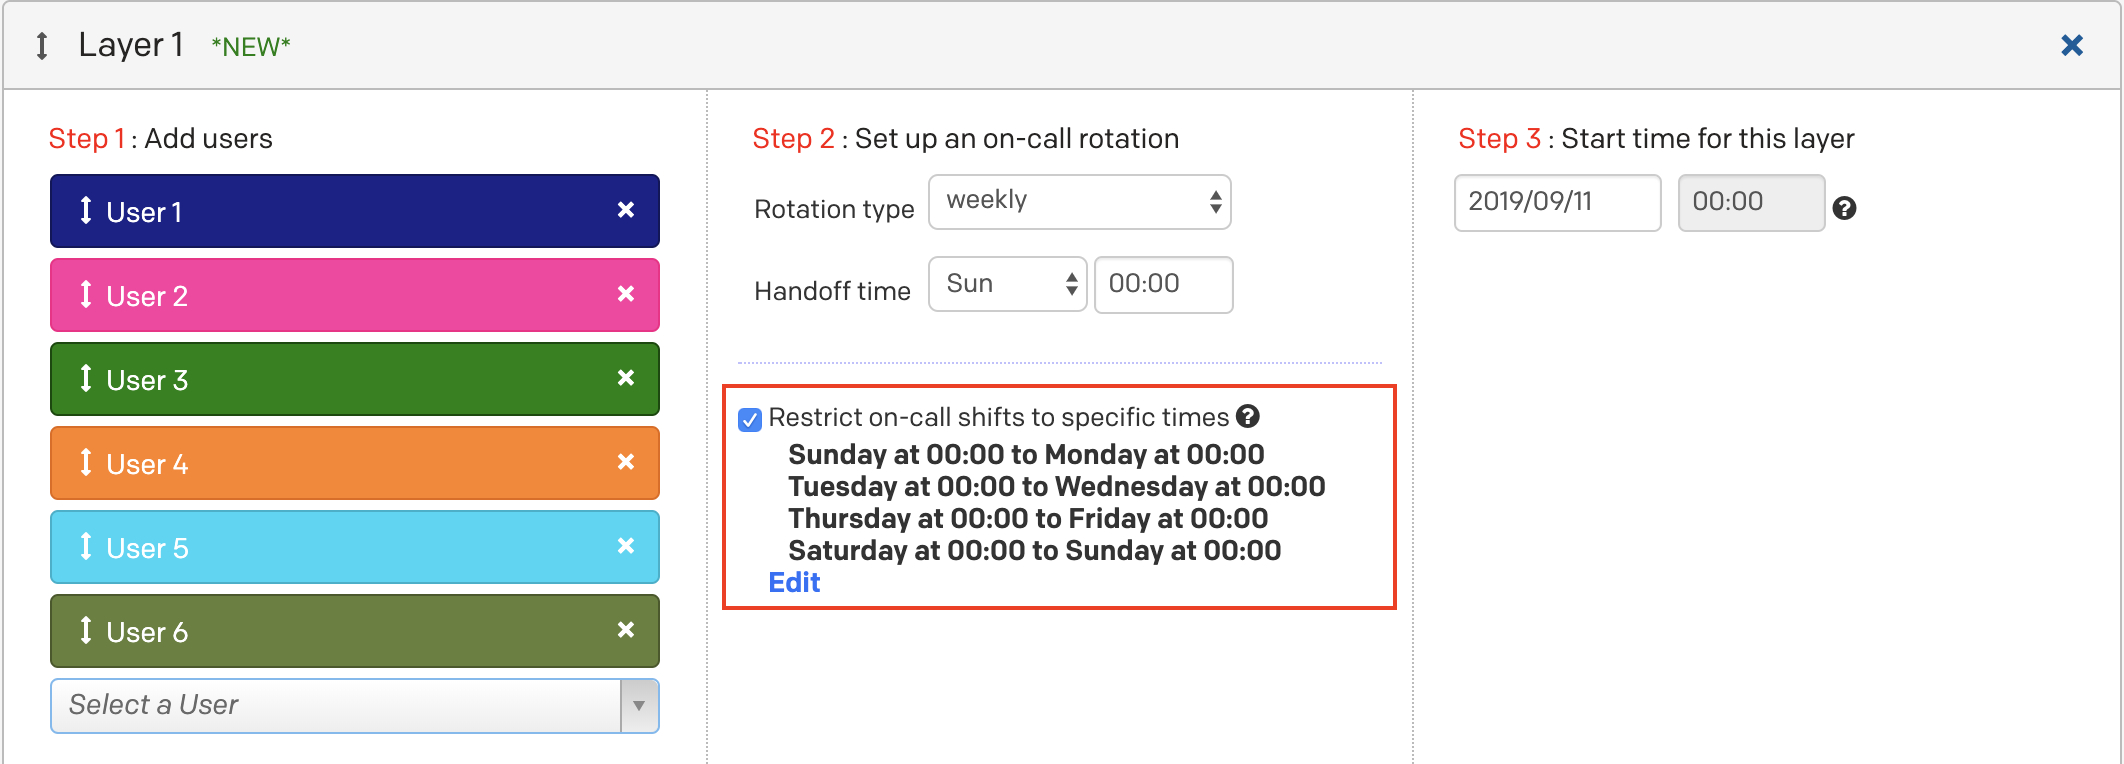 Schedule Examples What Is Considered A Monthly On Call Rotation